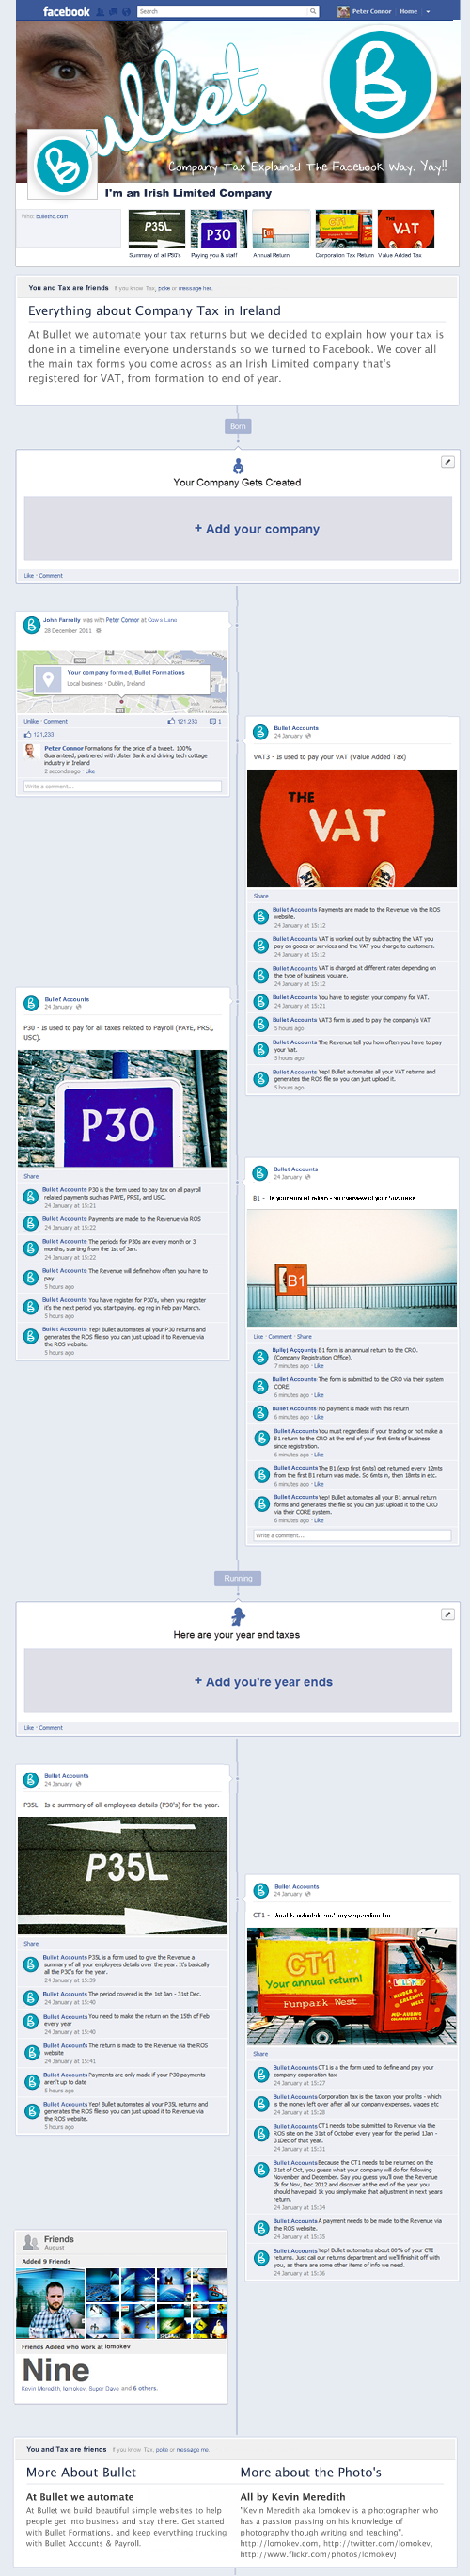 Infographic - Irish Company Tax Explained as a Facebook Timeline   online accounting solution